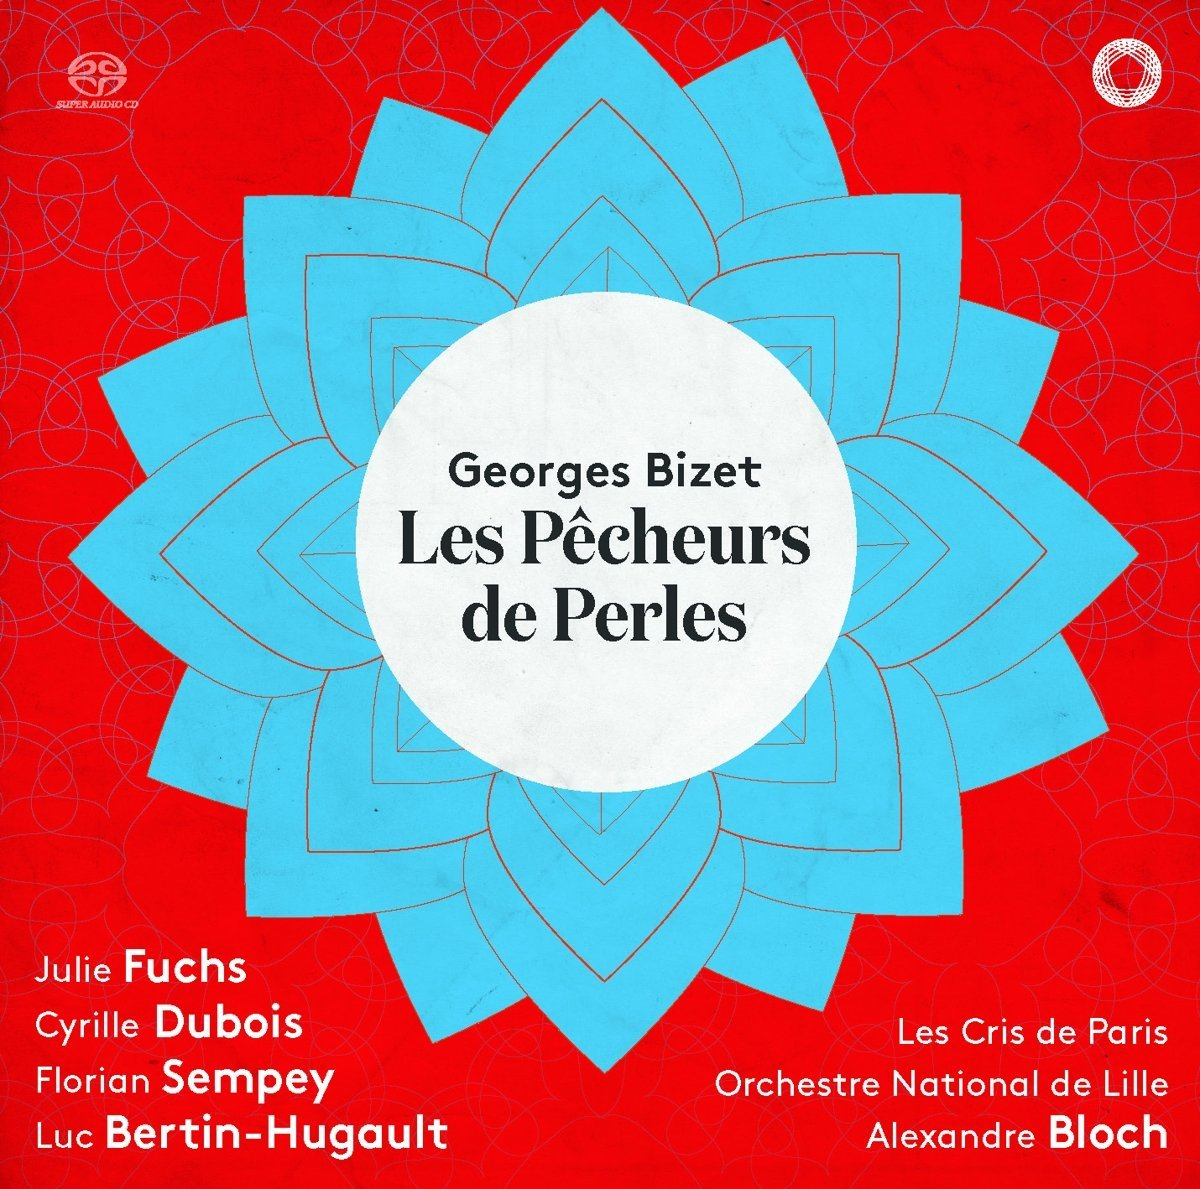 Suppleness and elegance: a new Les Pêcheurs de Perles from an all-French team